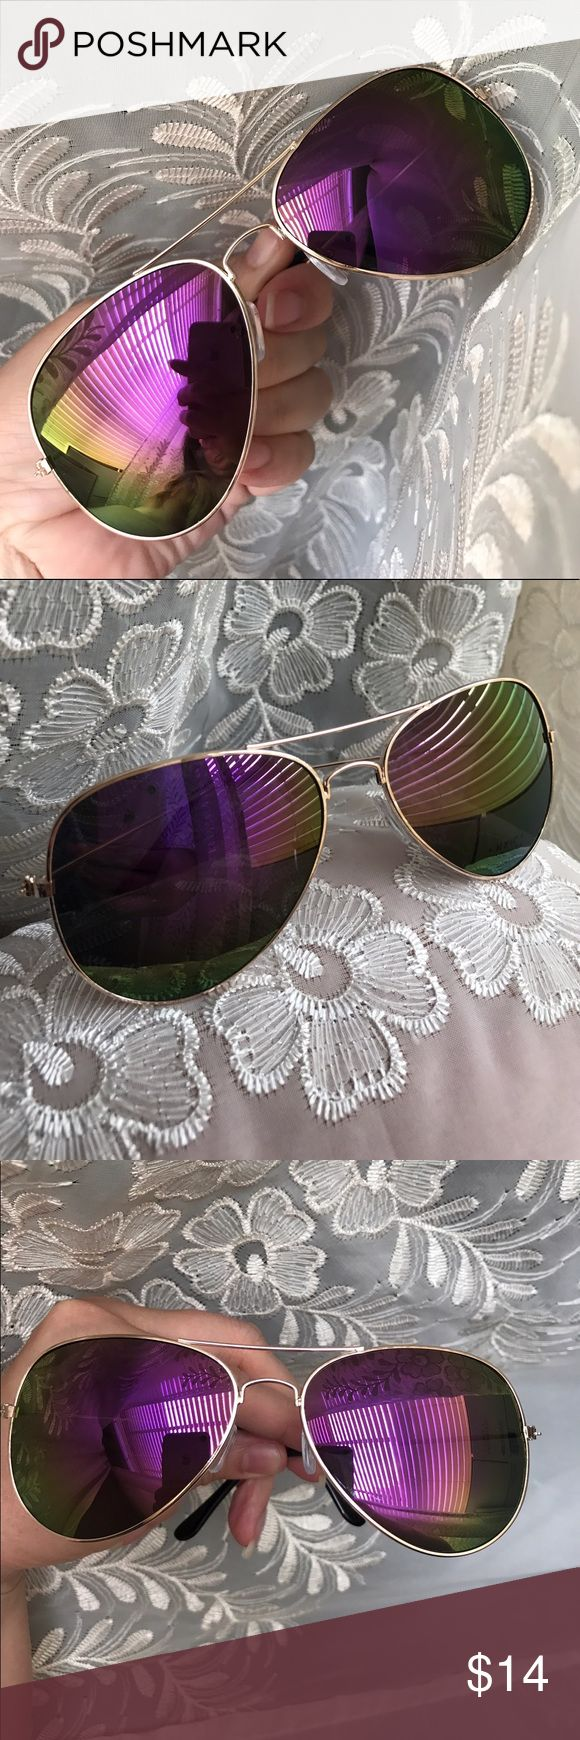 """☀️NEW☀️Purple Mirror Aviators Purple with green fade mirror lenses. Gold frames. Approximately 5.75"""" across frame front, 2 x 2.75"""" each lens frame. Fit not guaranteed. All images show example of actual stocked glasses. Brand new and unworn, without tag. Lens cloth and drawstring pouch included. No hard case. No brand. I do not model. No trades, no off app transactions.     ❗️PRICE IS FIRM UNLESS BUNDLED❗️                  Bundle and save  Leoninus Accessories Sunglasses"""